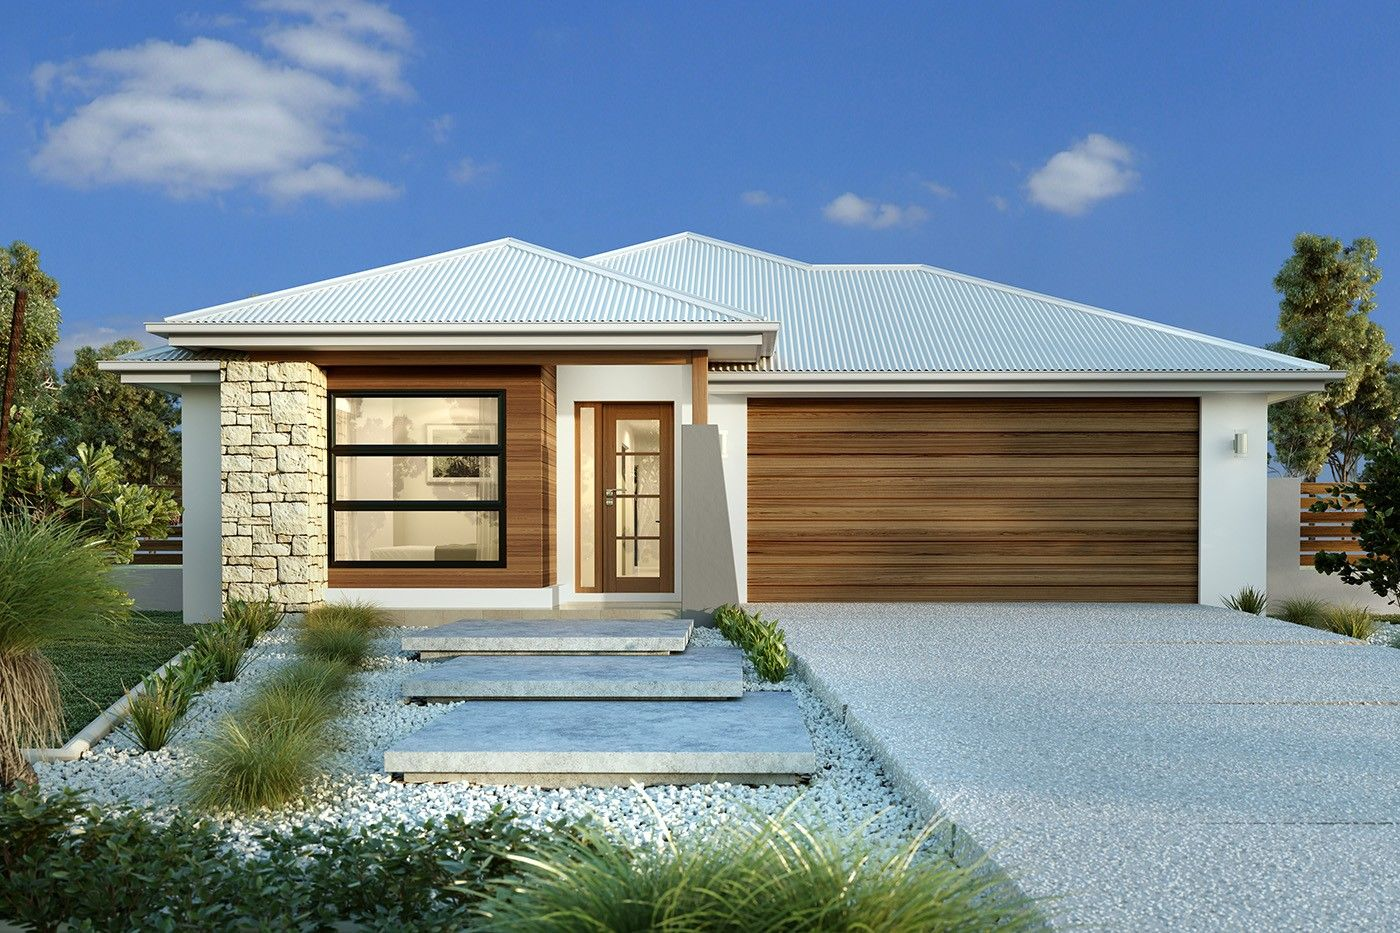 Lot 64 Betty Way - Cathlaw on Ferrier Estate - New, lower price, New Gisborne VIC 3438, Image 0